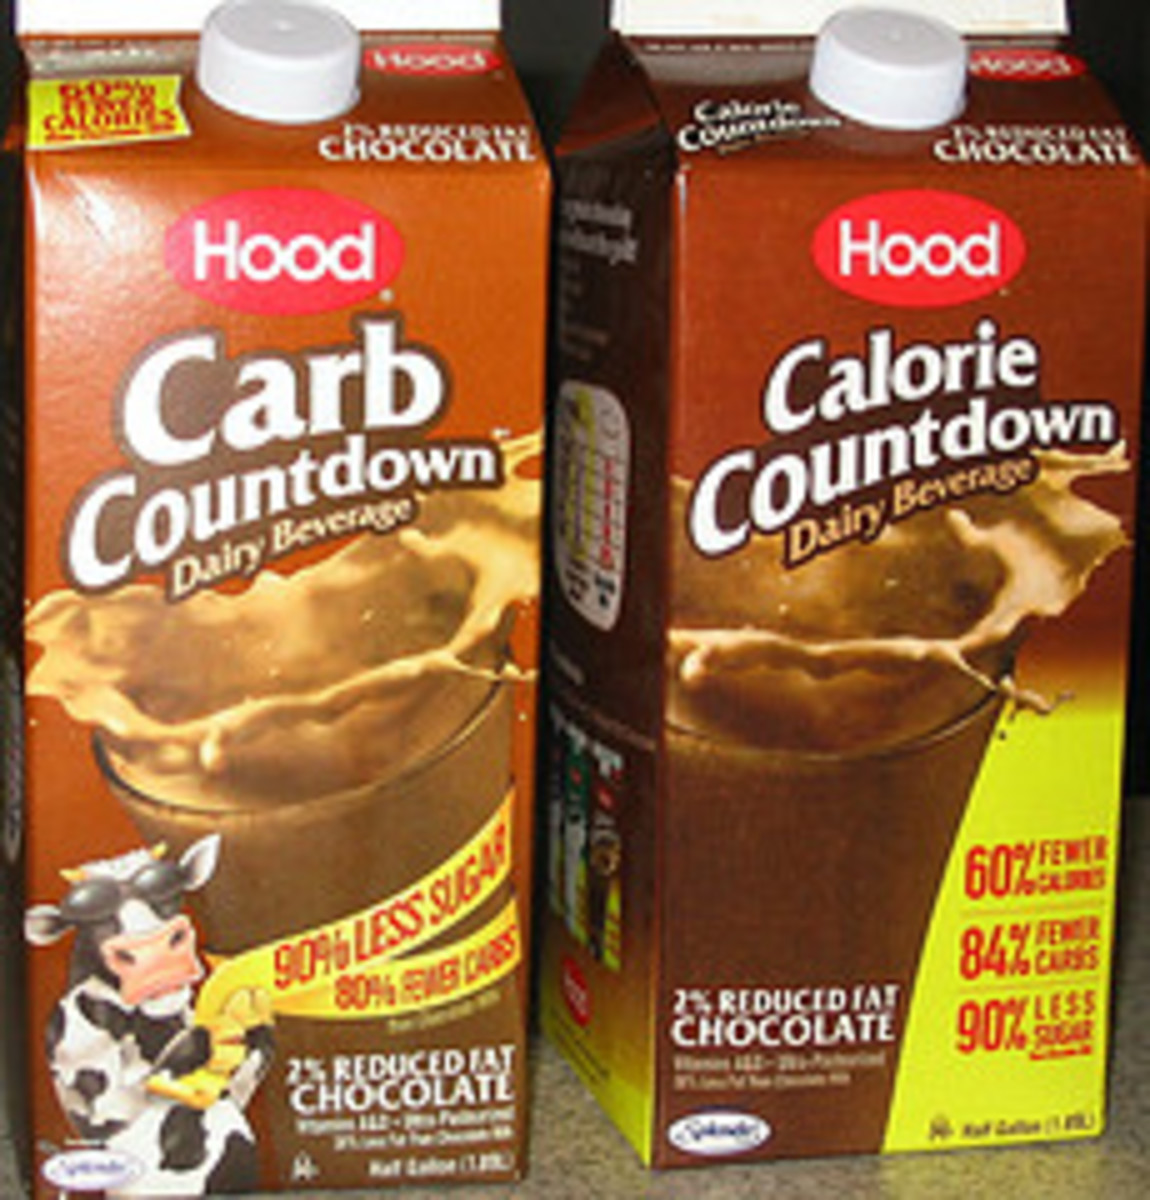 This low carb chocolate milk is awesome!